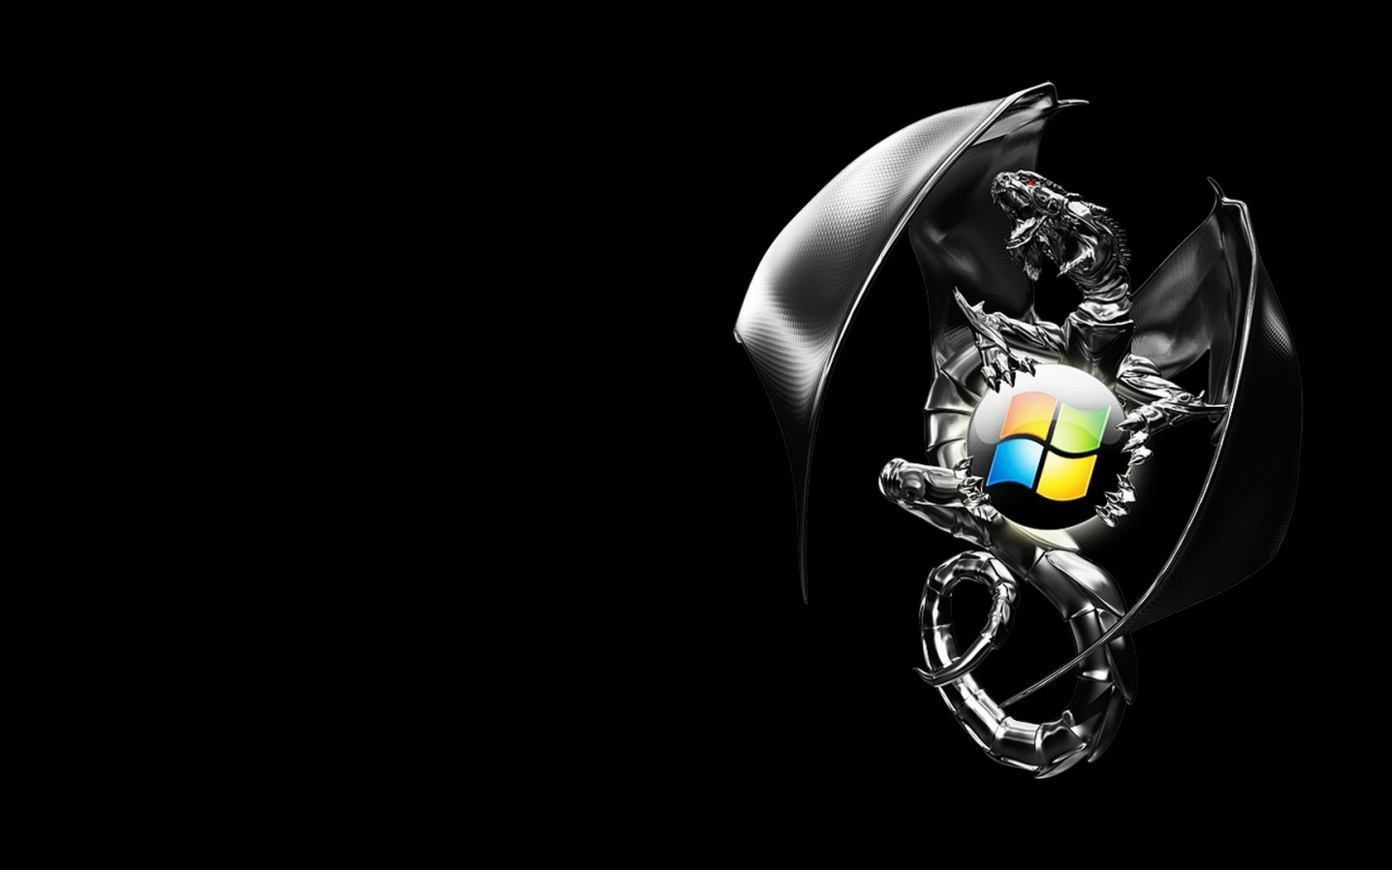 windows 7 dragon black background hd wallpaper | fondos de pantalla